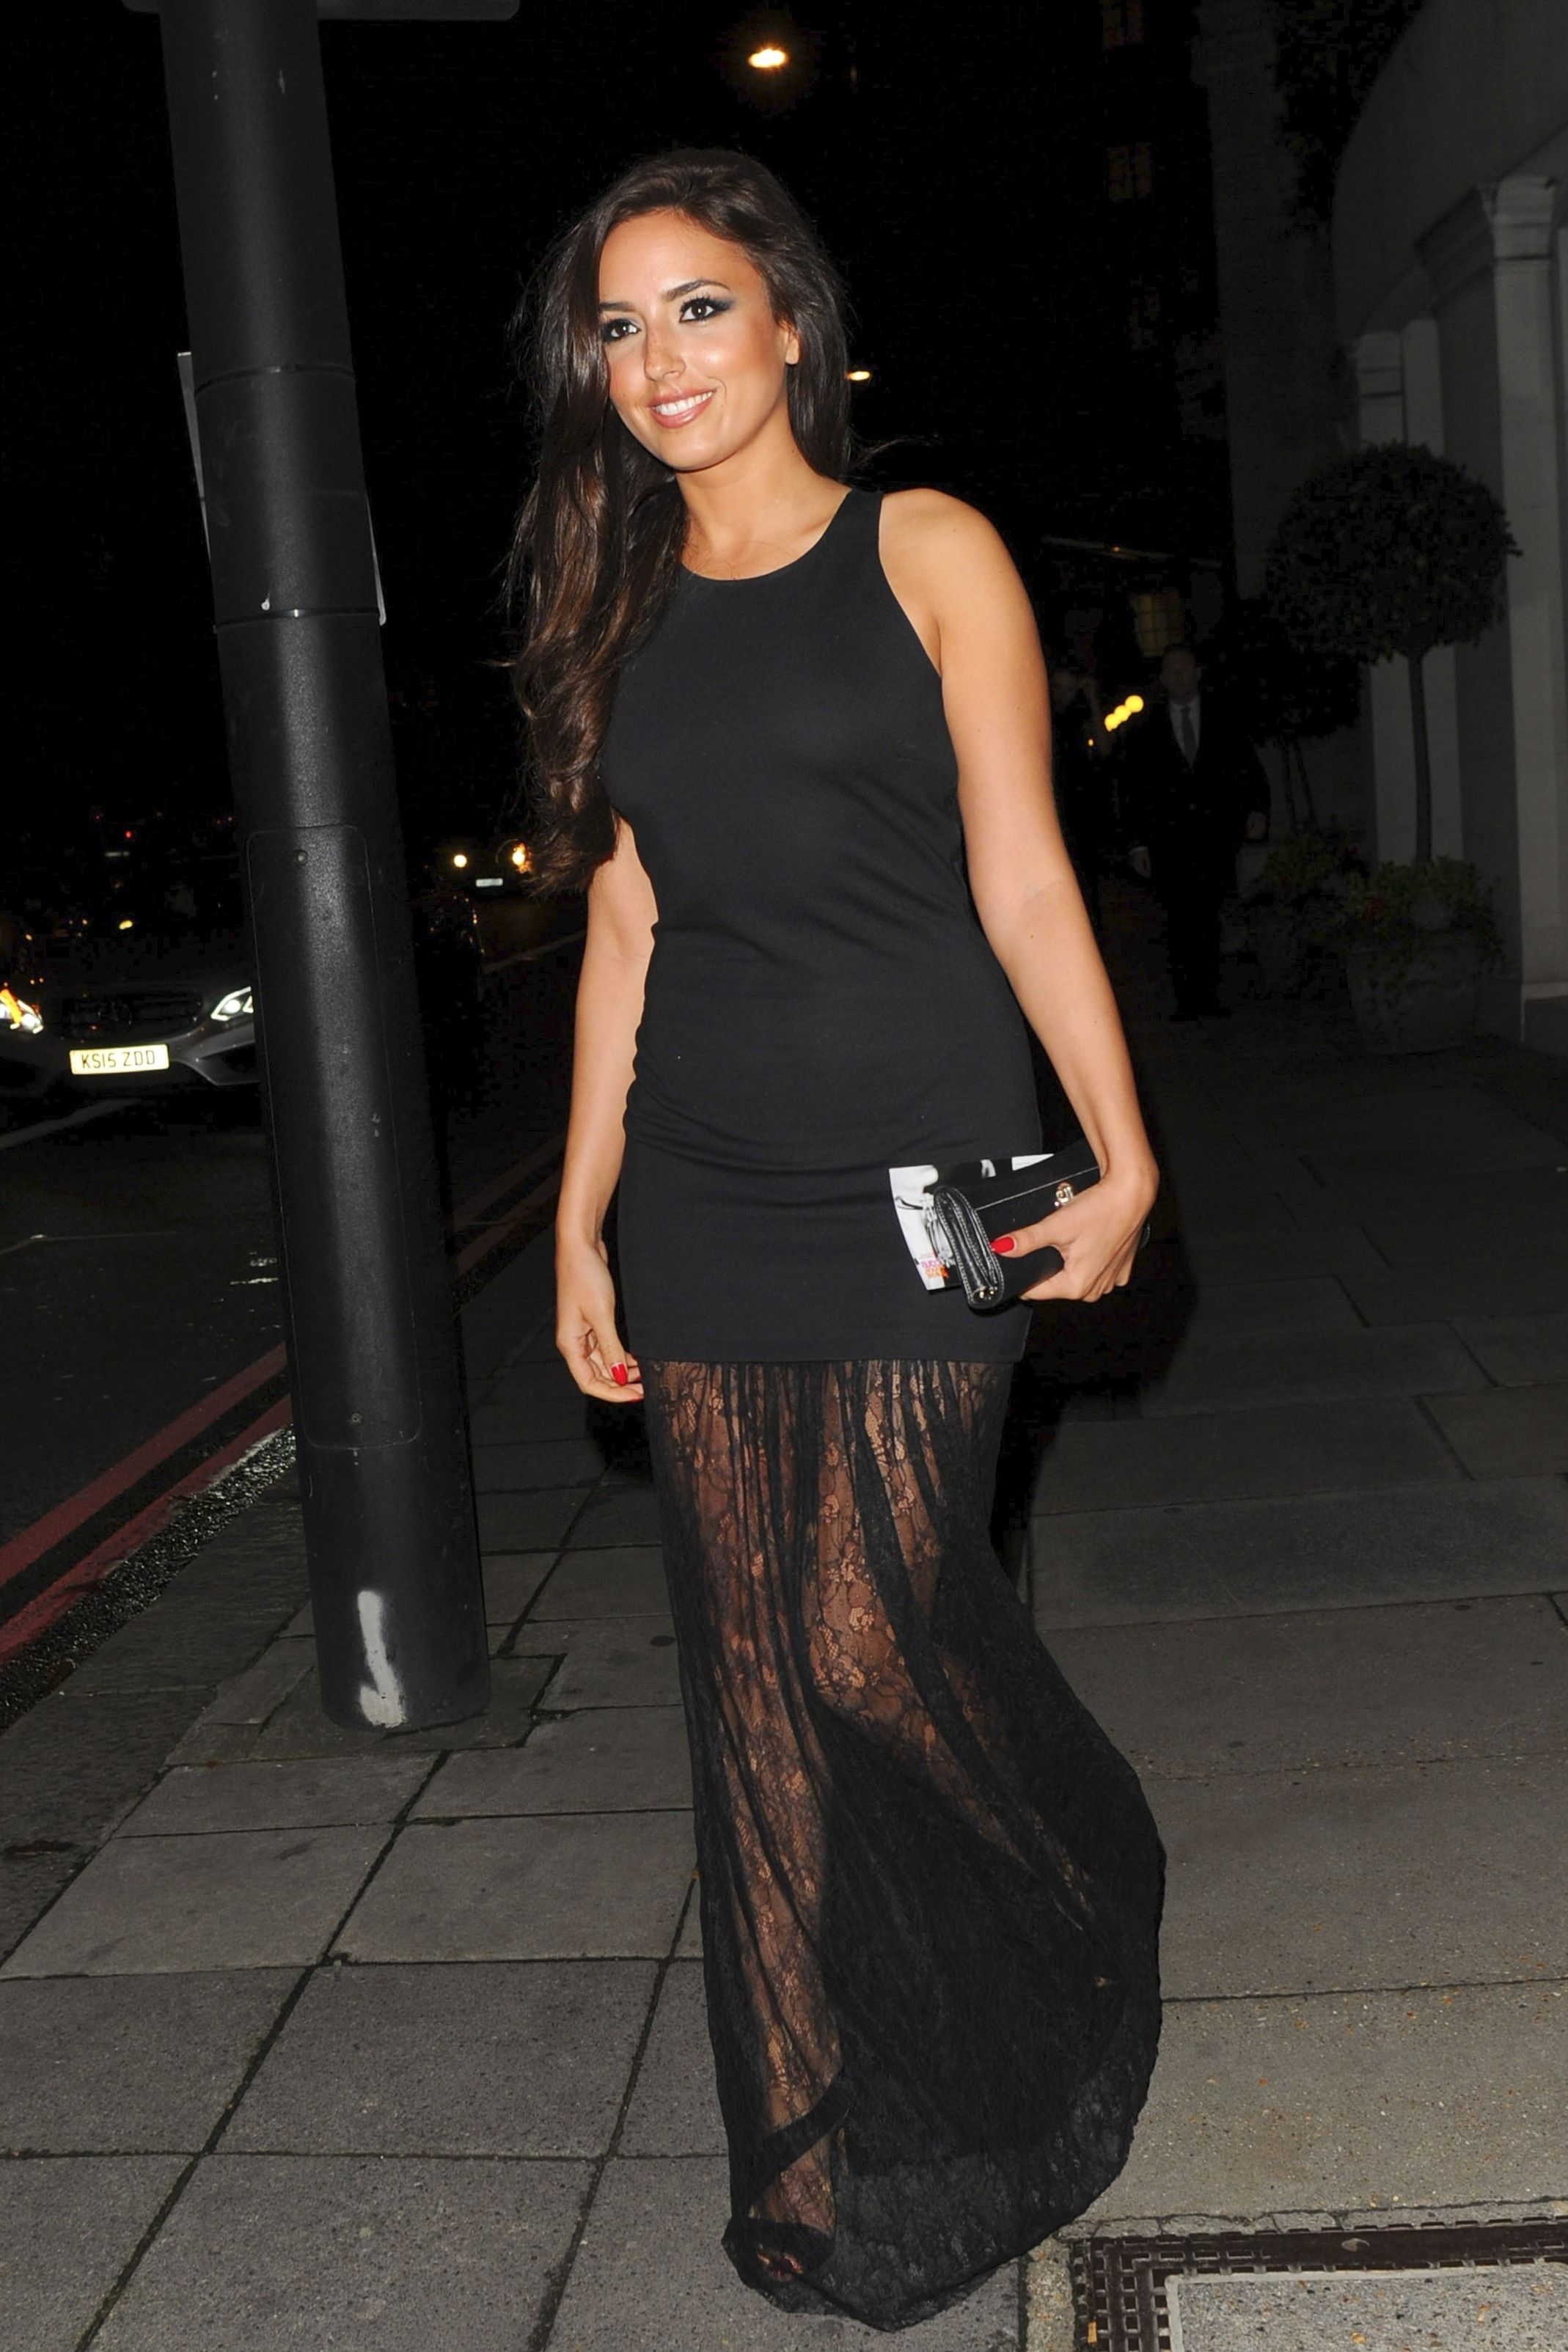 Nadia Forde Photo Gallery High Quality Pics Of Nadia